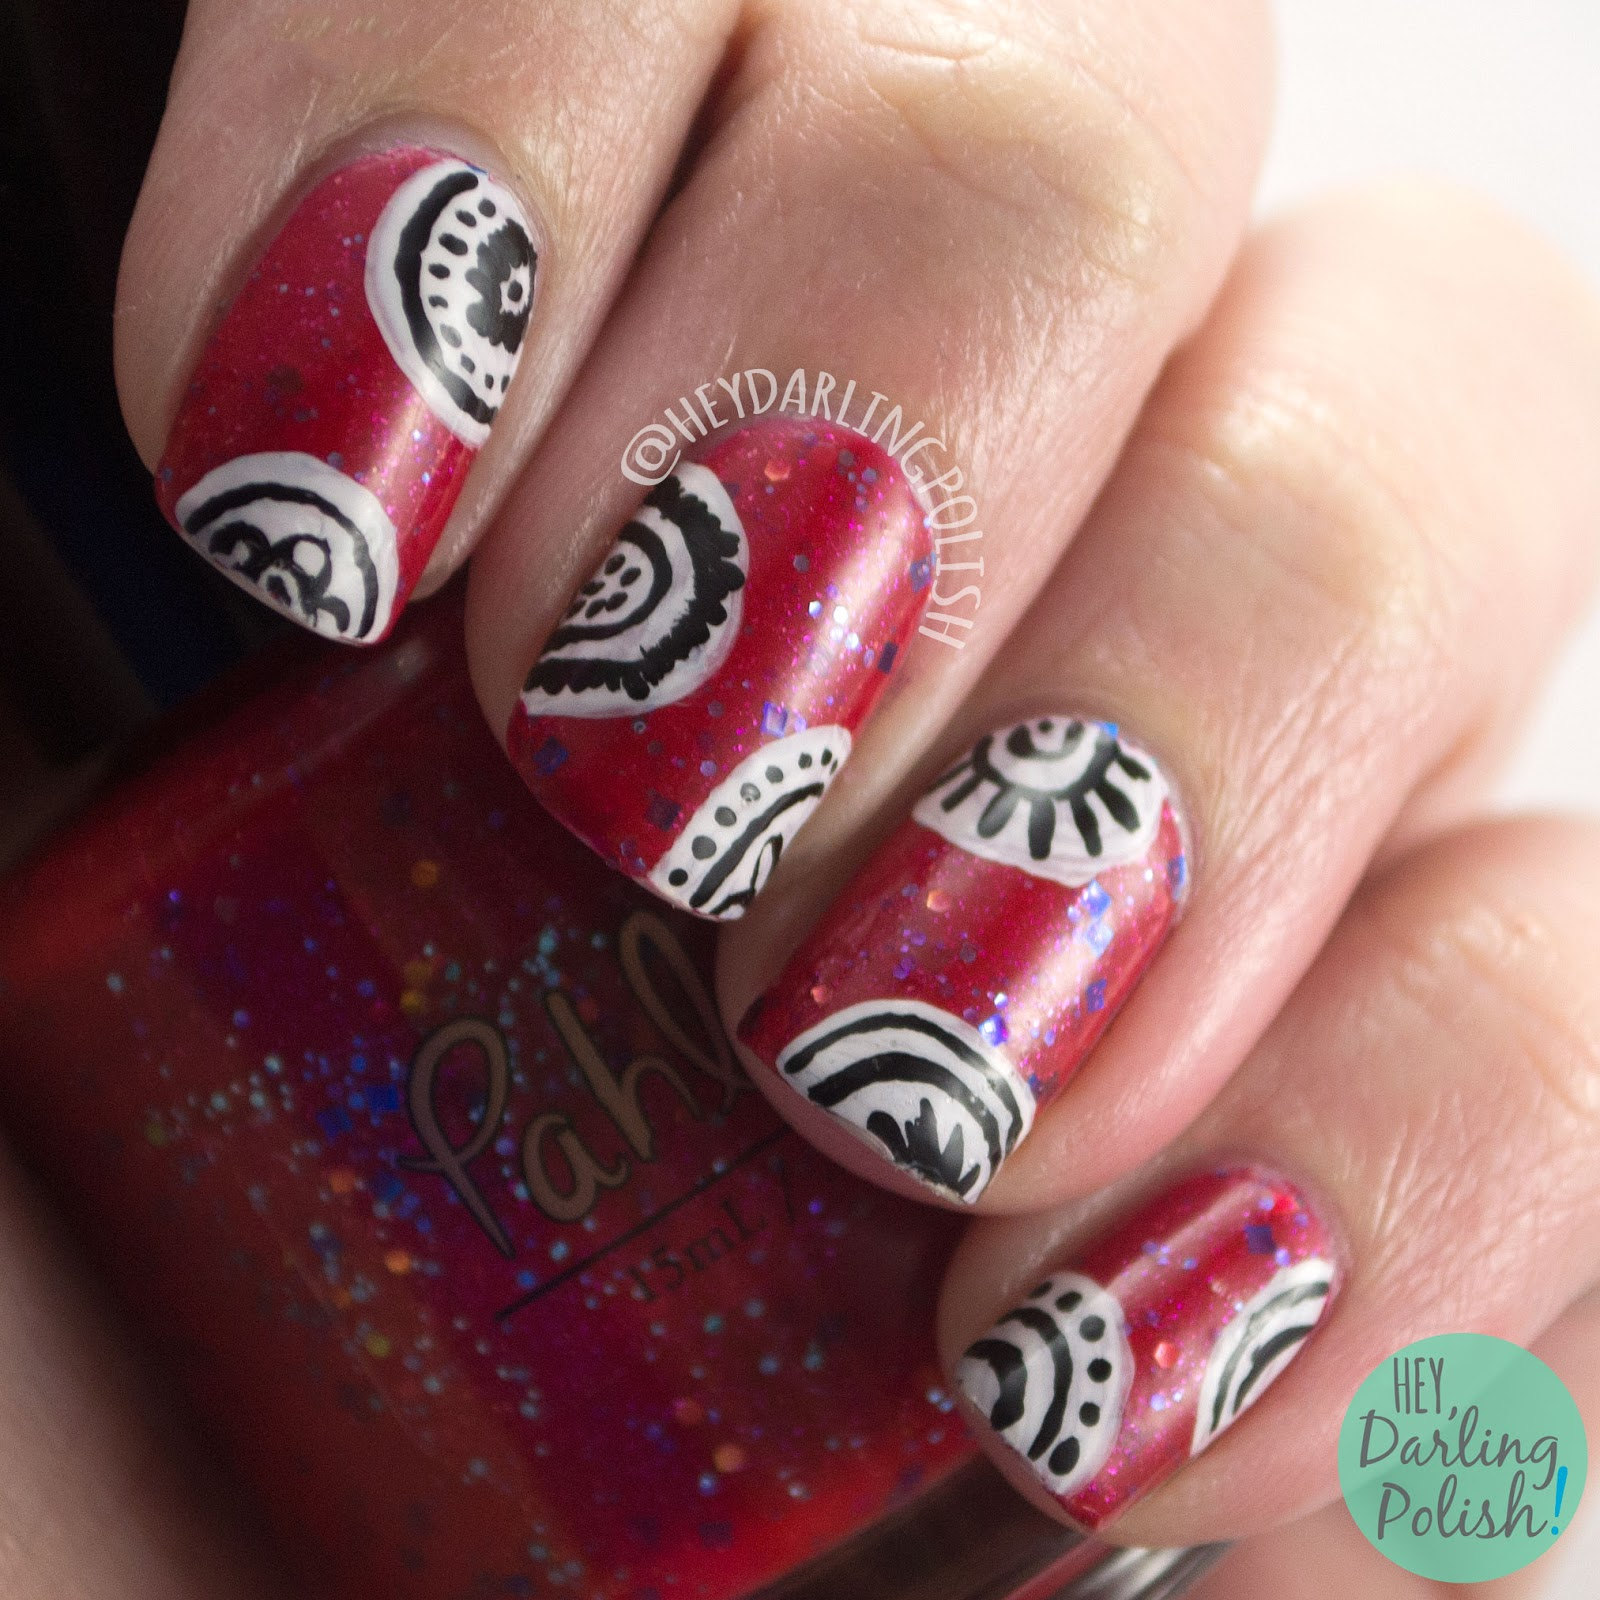 indie polish, nails, nail art, nail polish, red, hey darling polish, freehand, 2015 cnt 31 day challenge